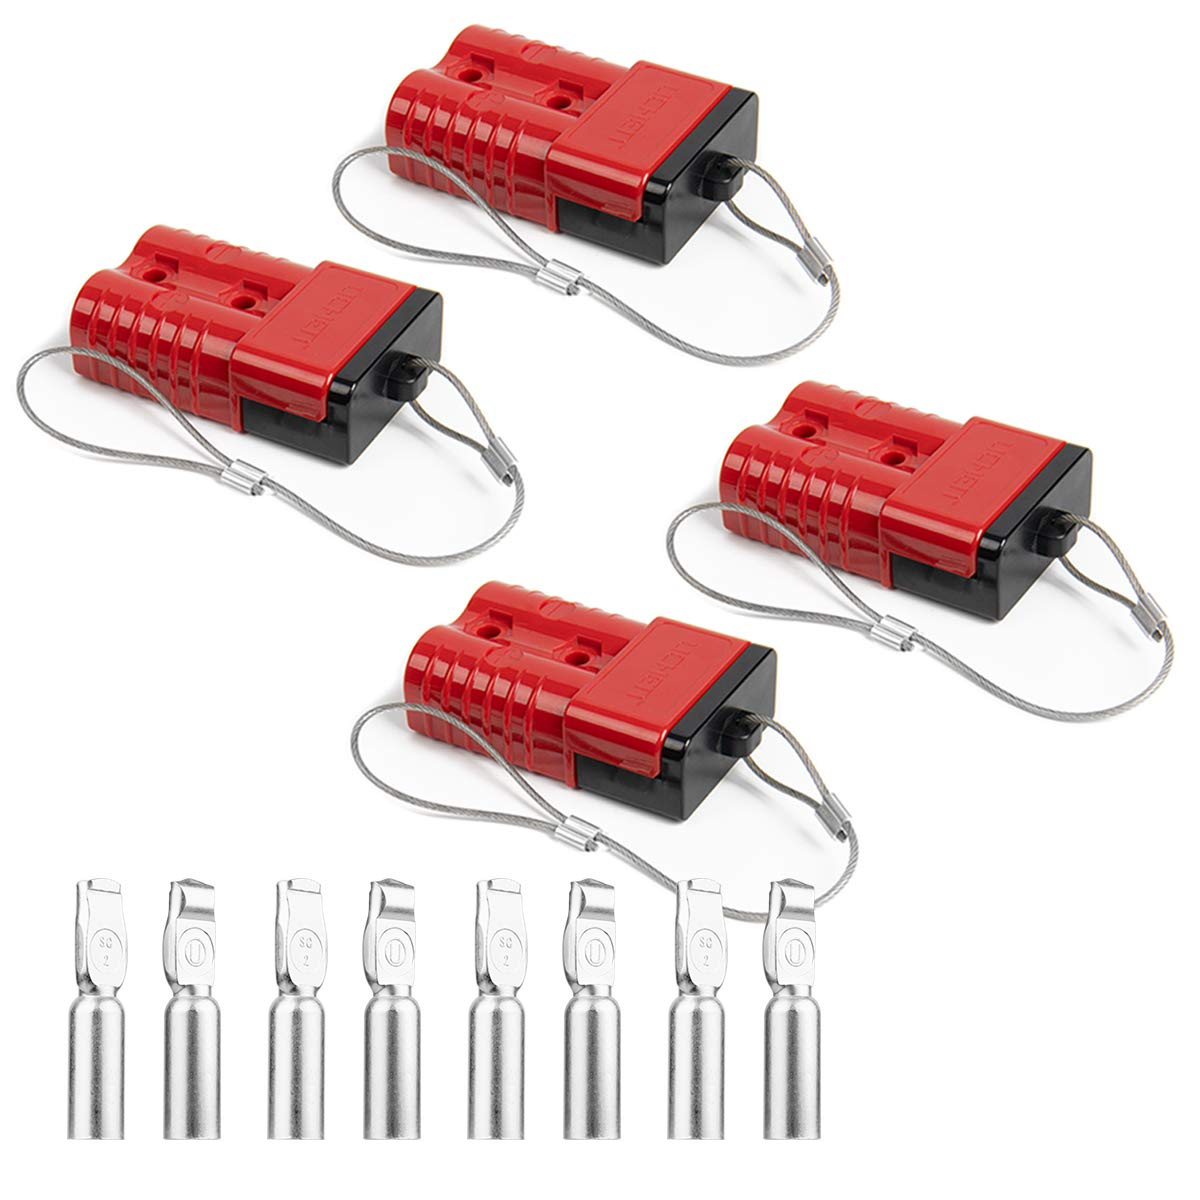 HYCLAT Red 2-4 Gauge Battery Quick Connect/Disconnect Wire Harness Plug Connector Recovery Winch Trailer (4 Pack) by HYCLAT